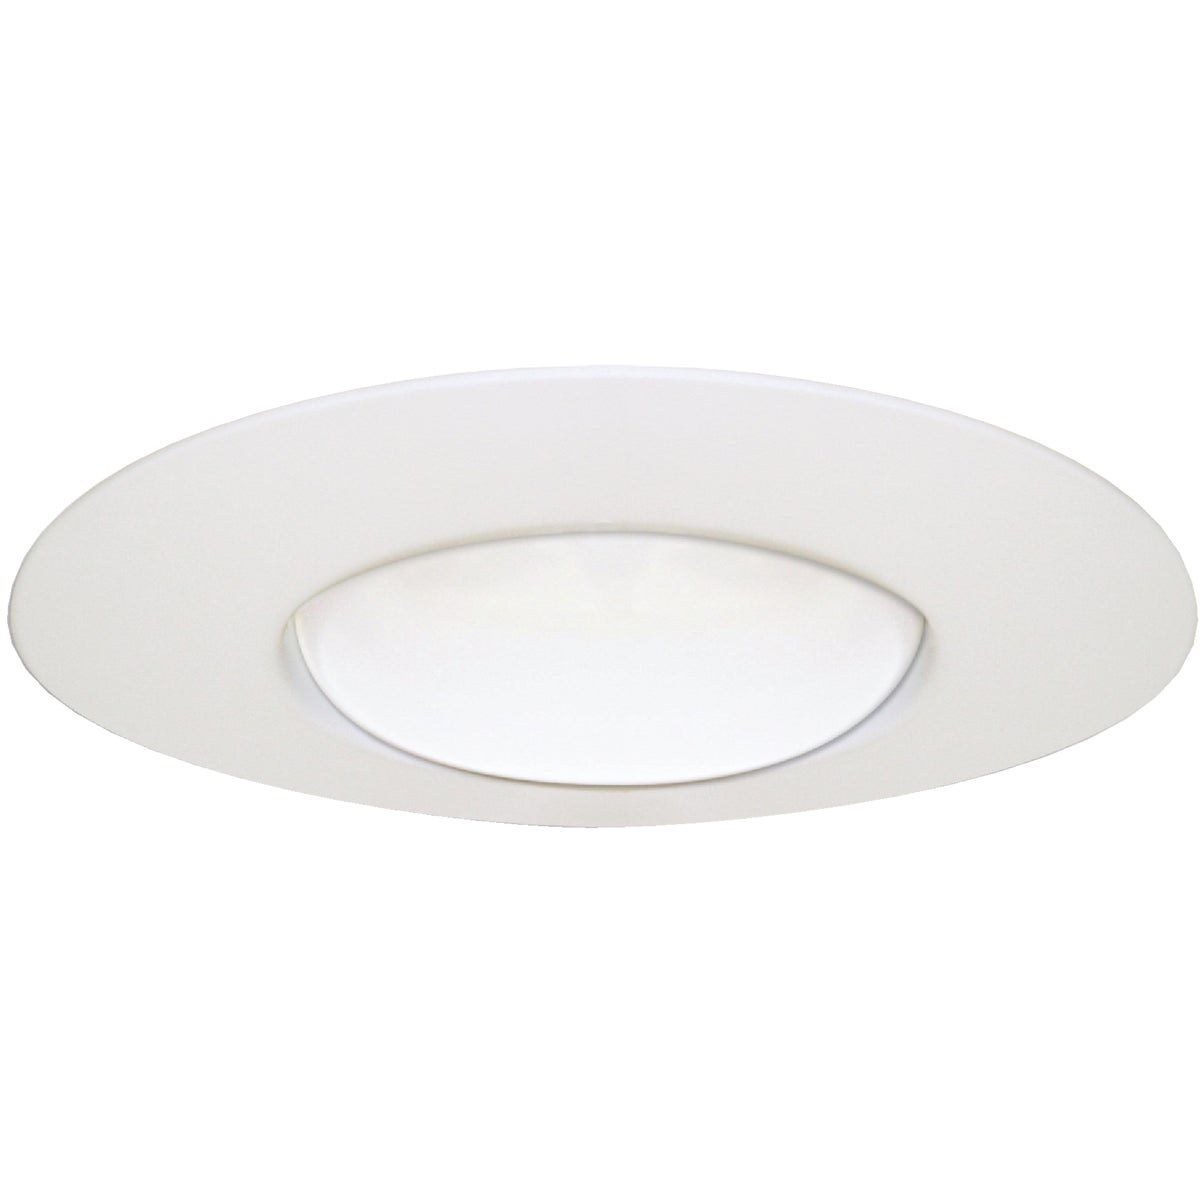 WHT RECESS FIXTURE TRIM - 300P by Cooper Lighting